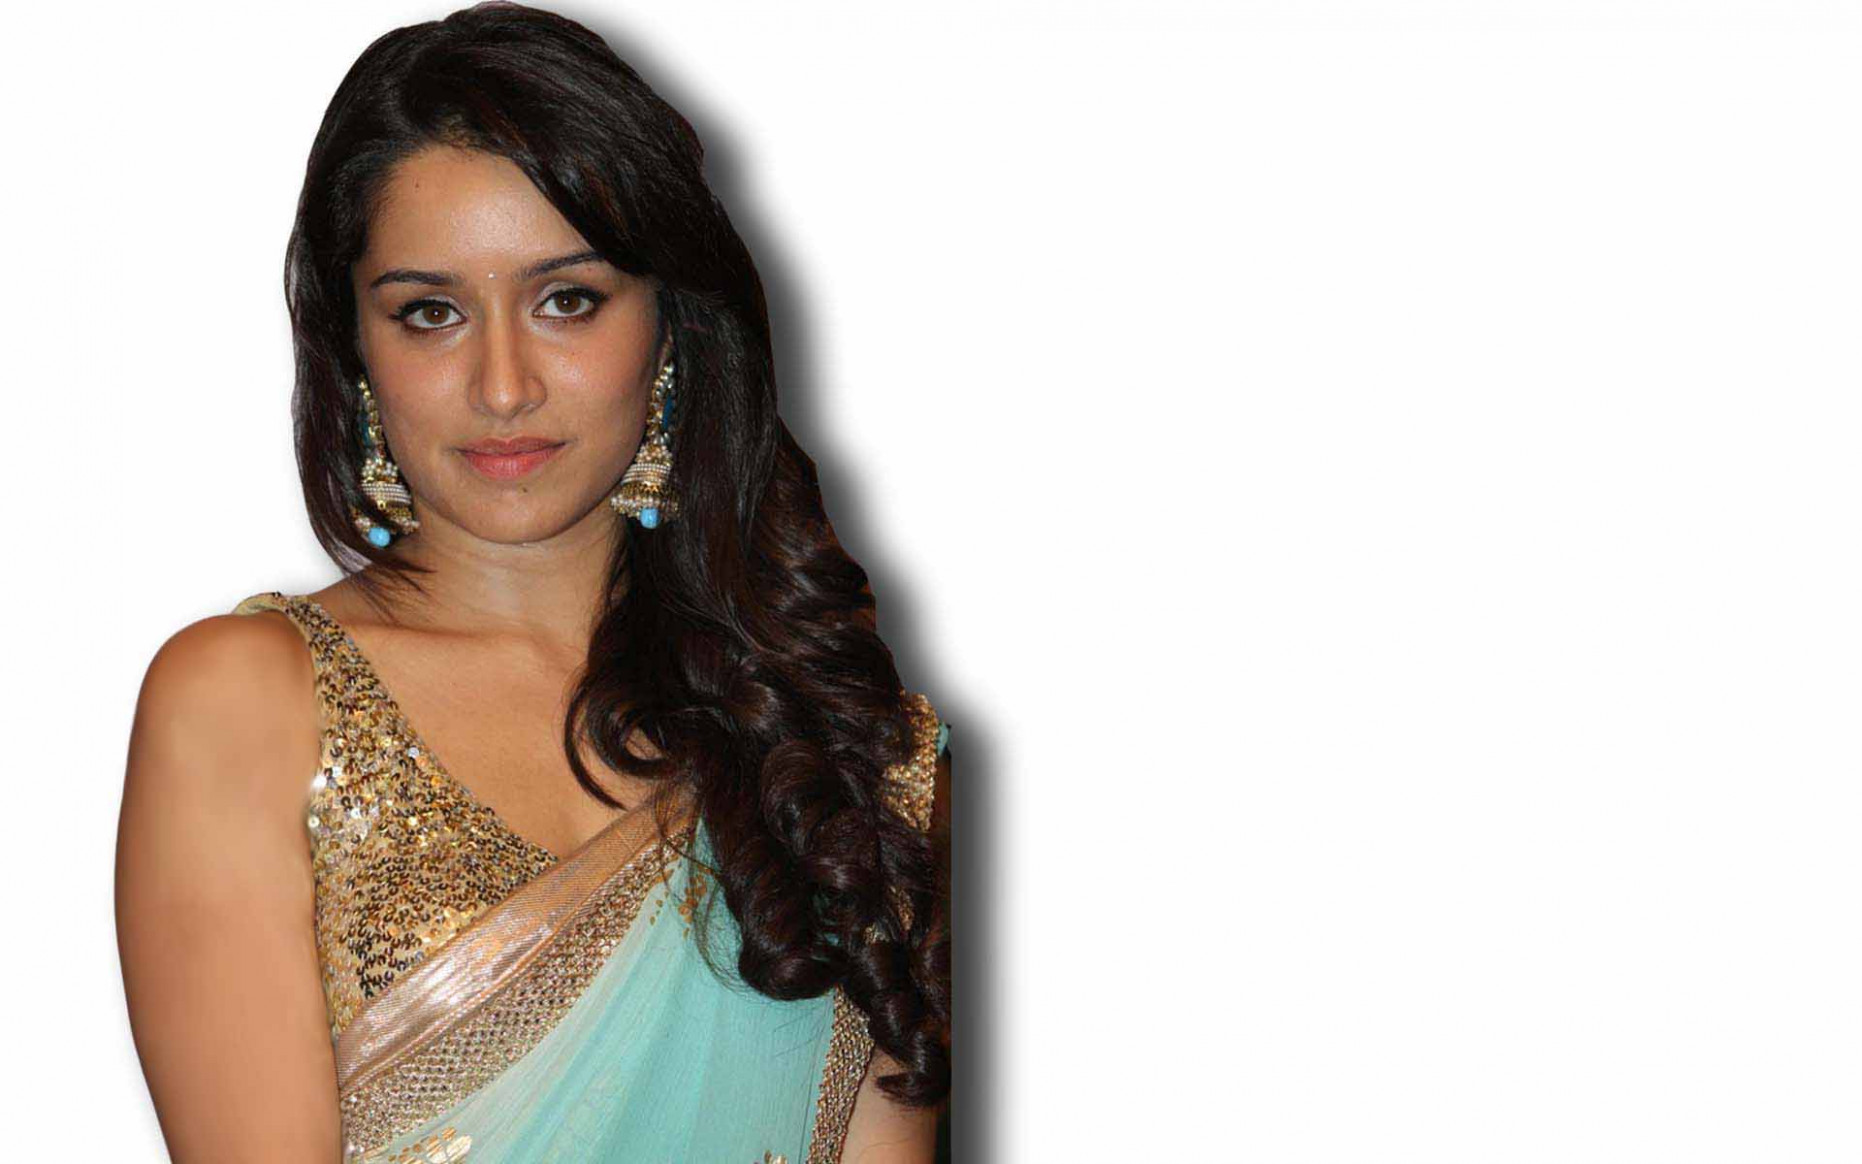 Still Shraddha Kapoor sleeveless saree widescreen desktop ..